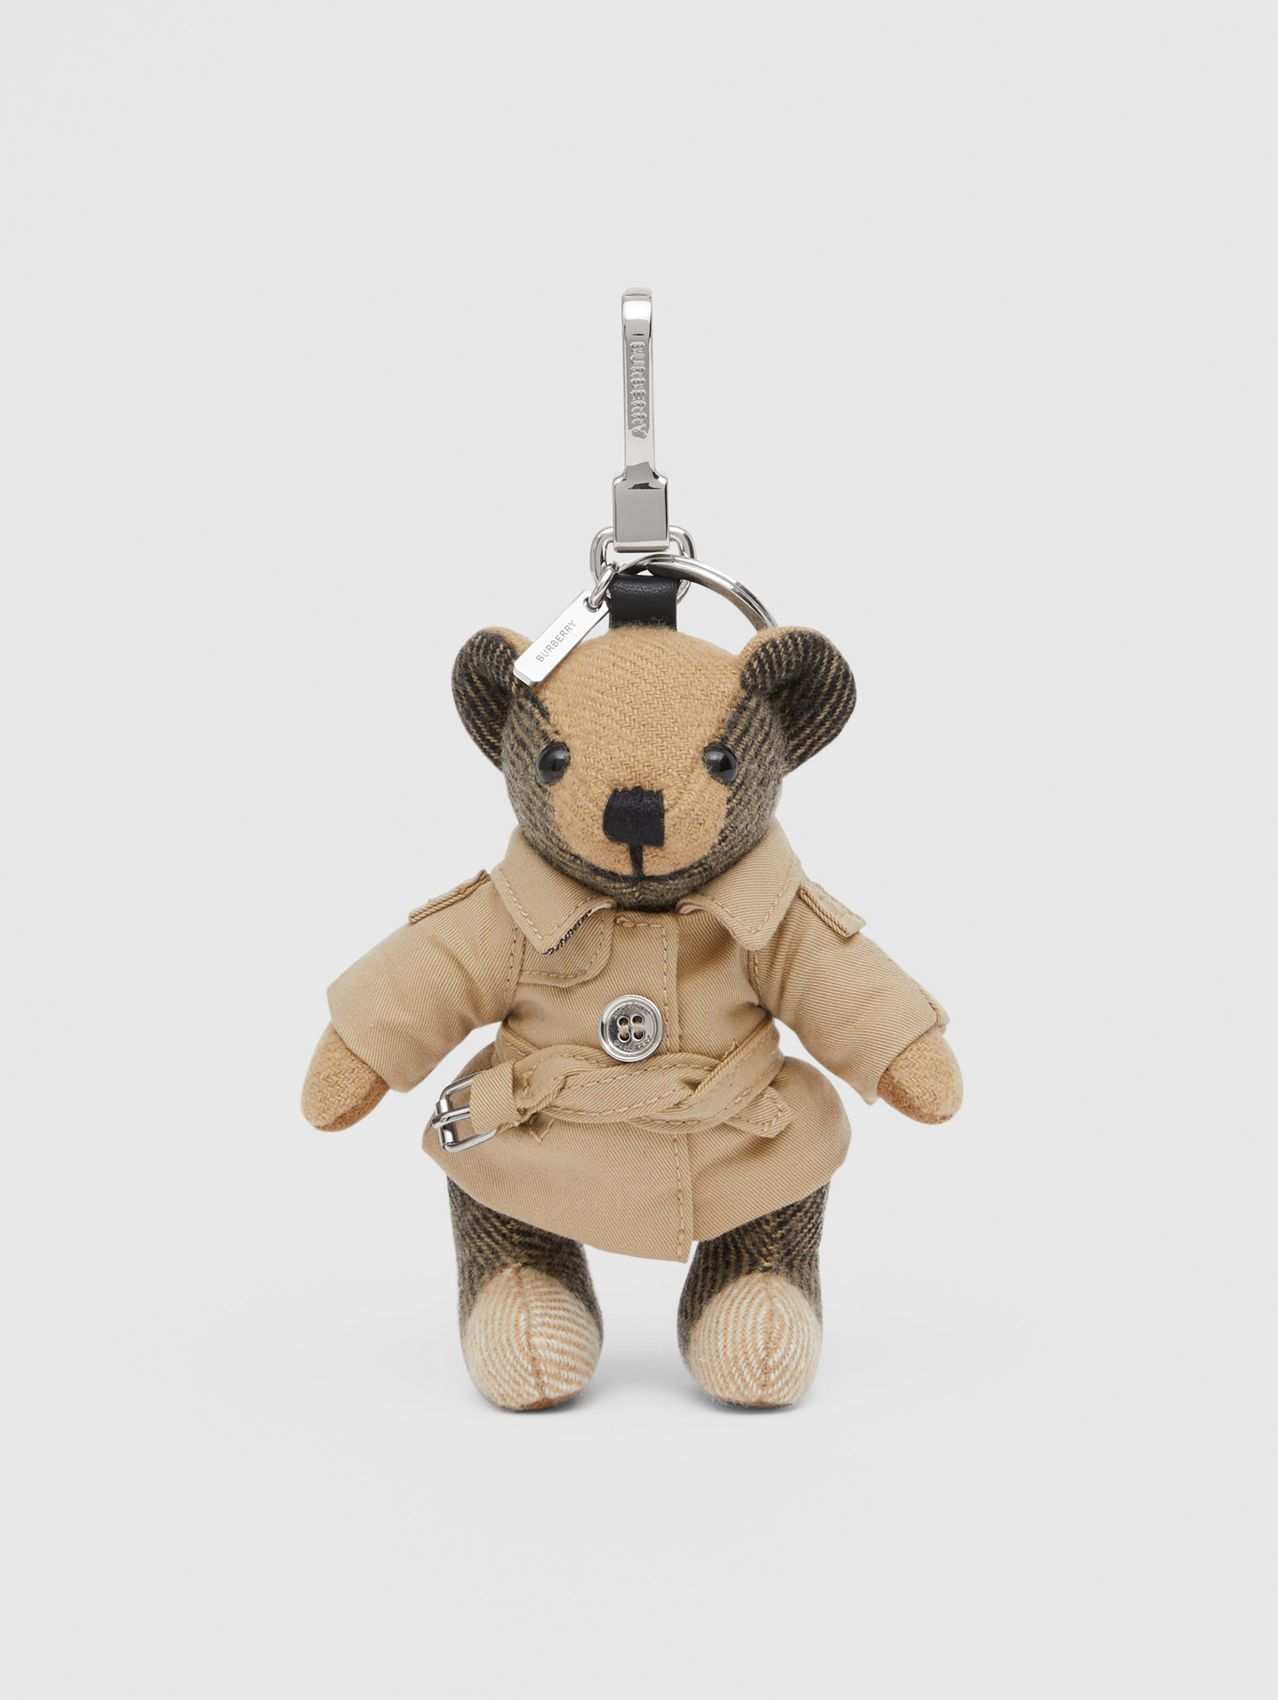 Bijou porte-clés Thomas Bear avec trench in Beige D'archive